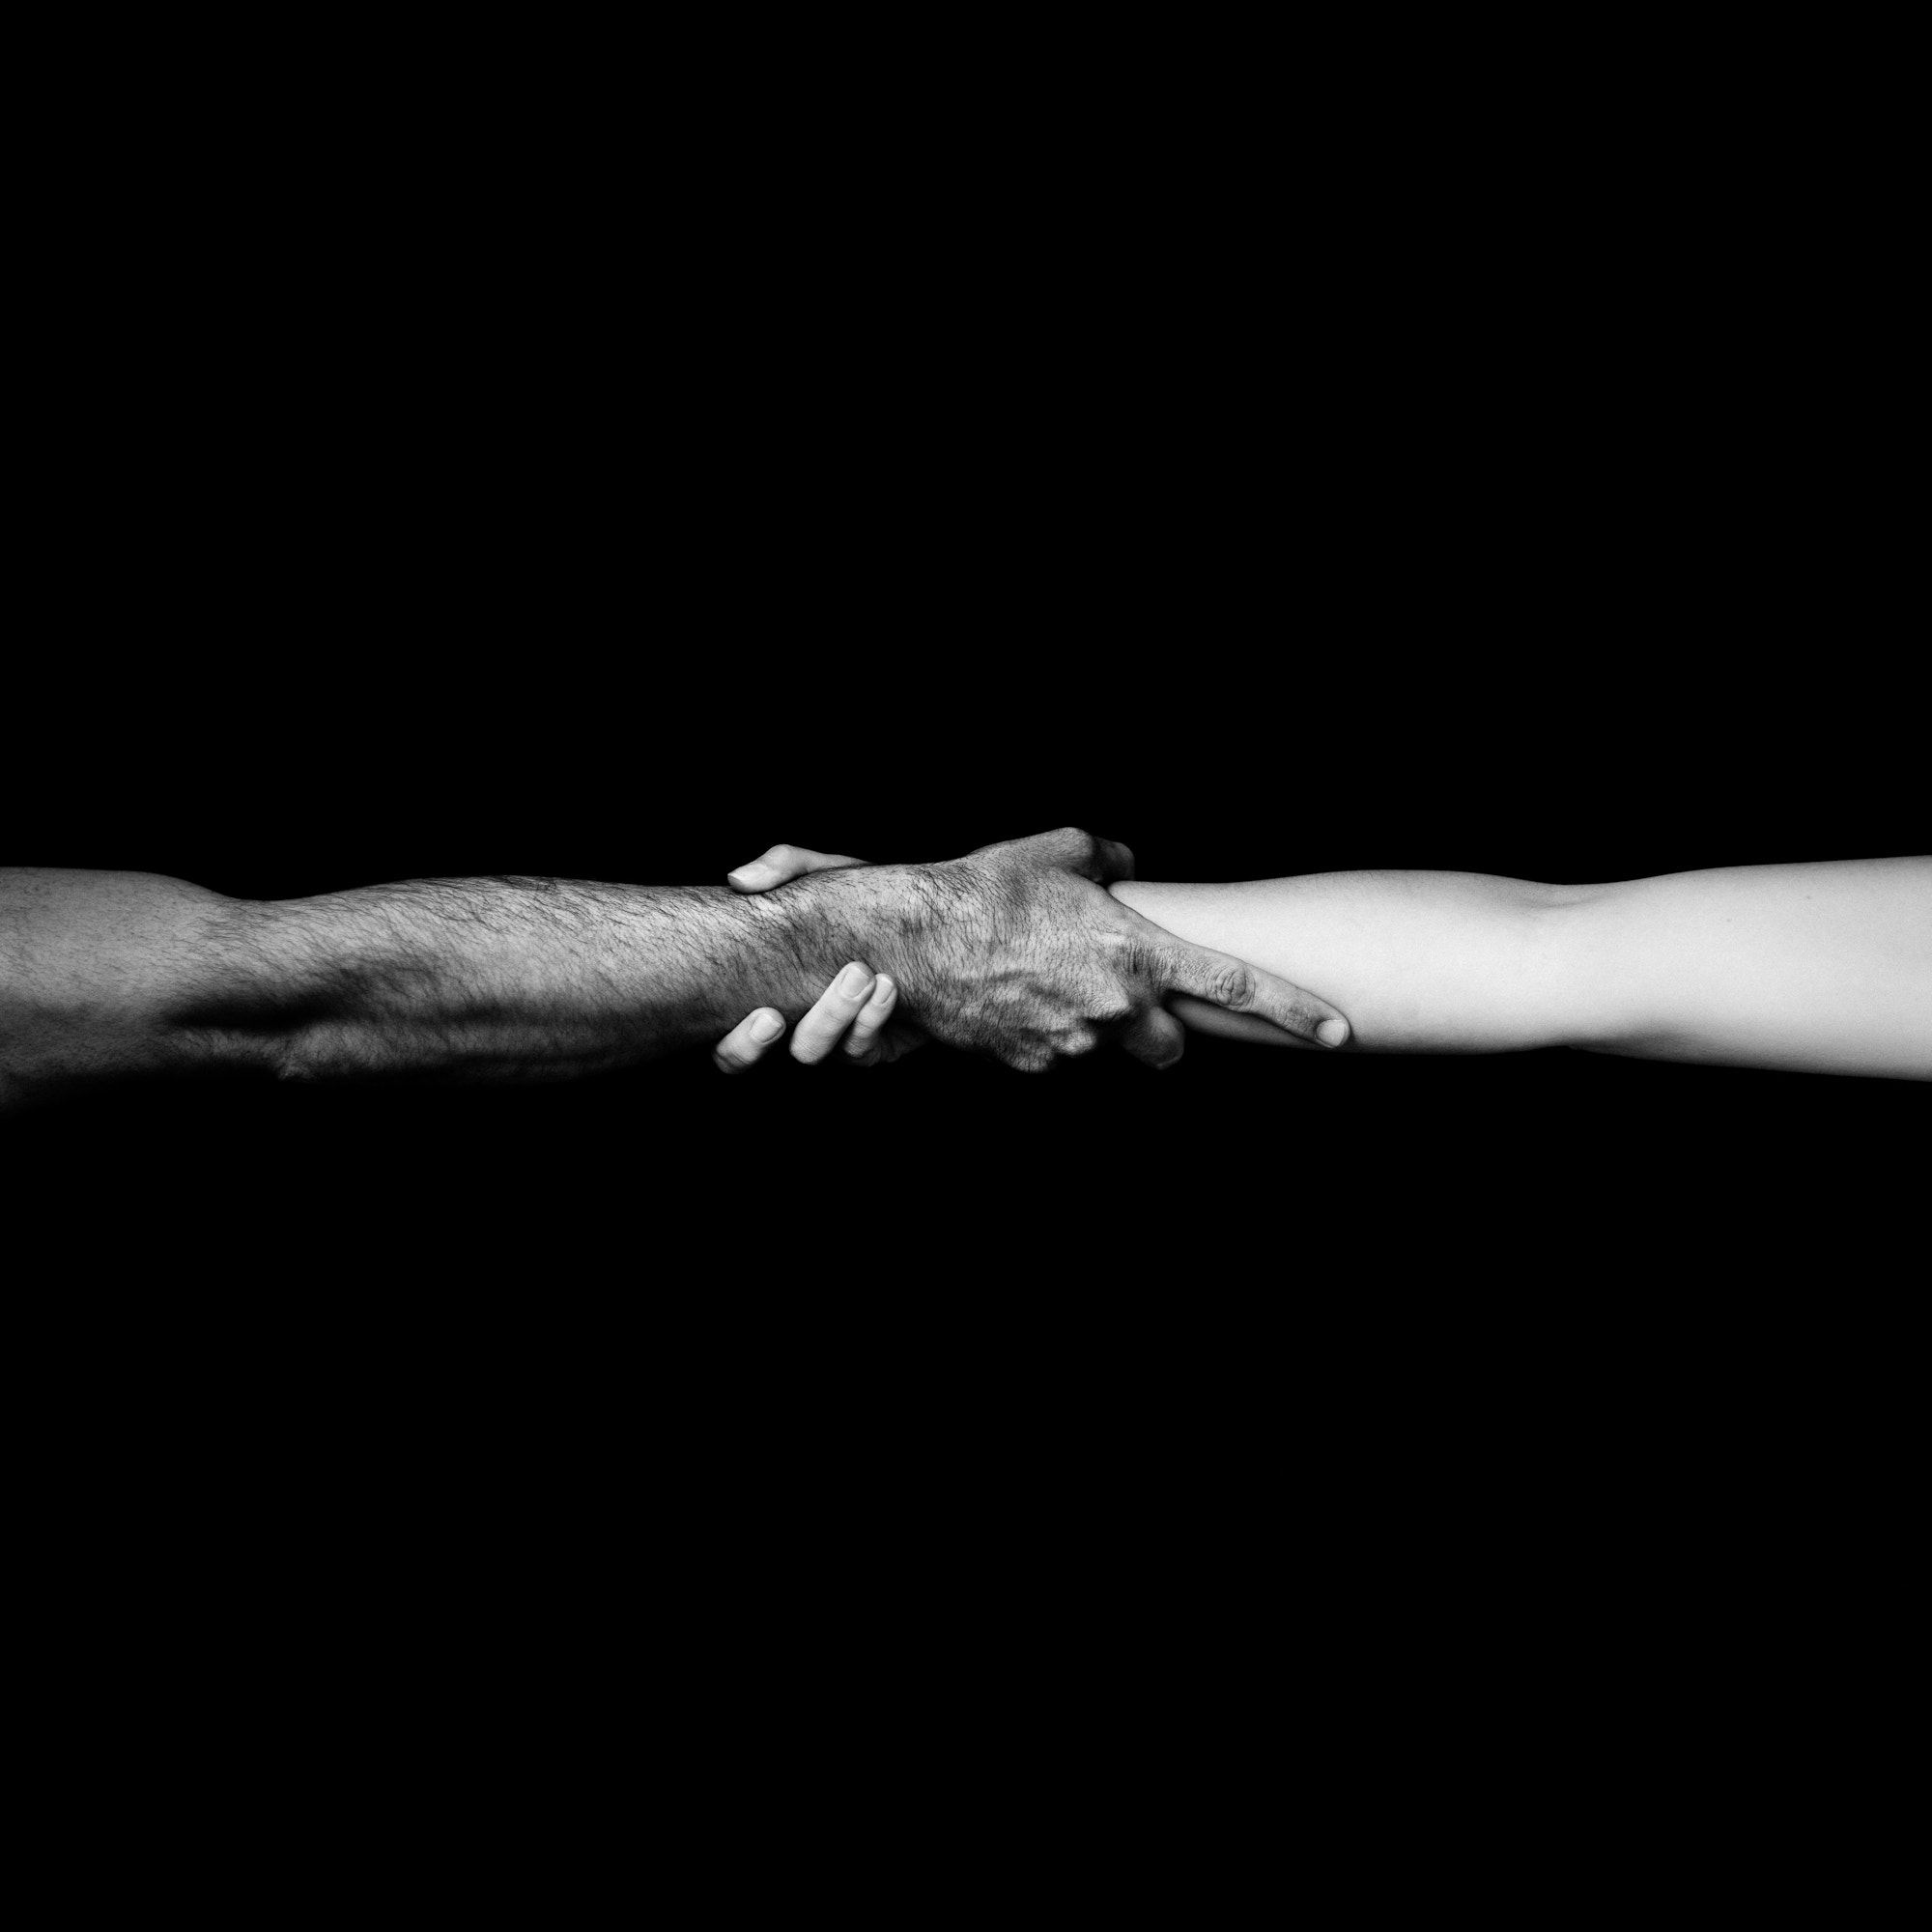 Photograph Retiens-moi by Benoit COURTI on 500px